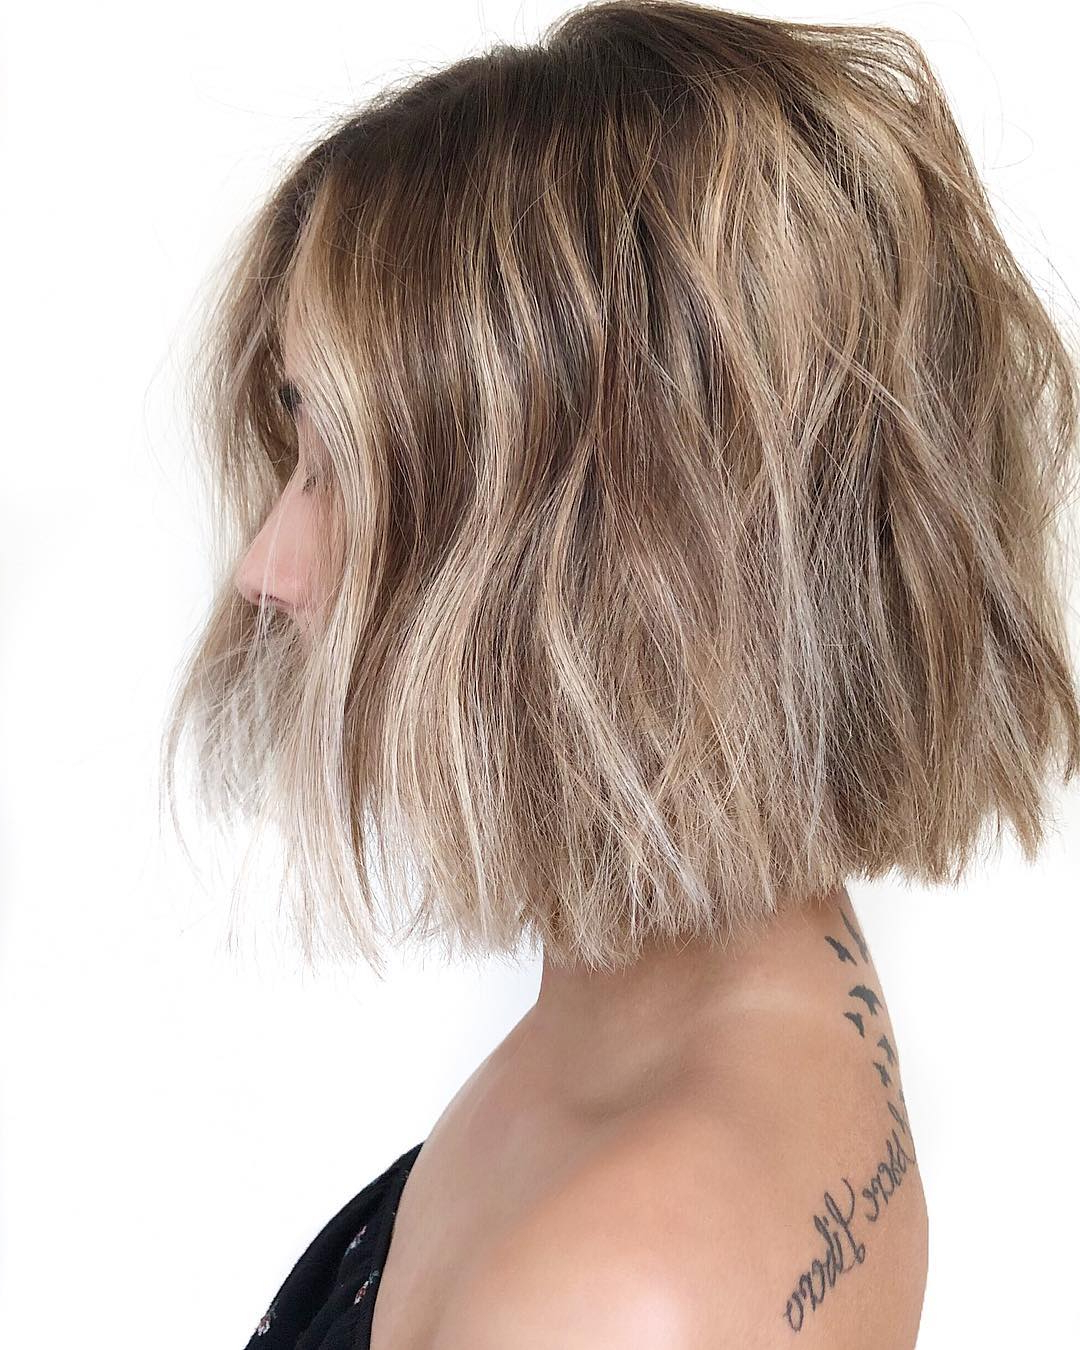 10 Trendy Messy Bob Hairstyles And Haircuts, 2019 Female Short Hair For Latest Messy Medium Haircuts (View 1 of 20)